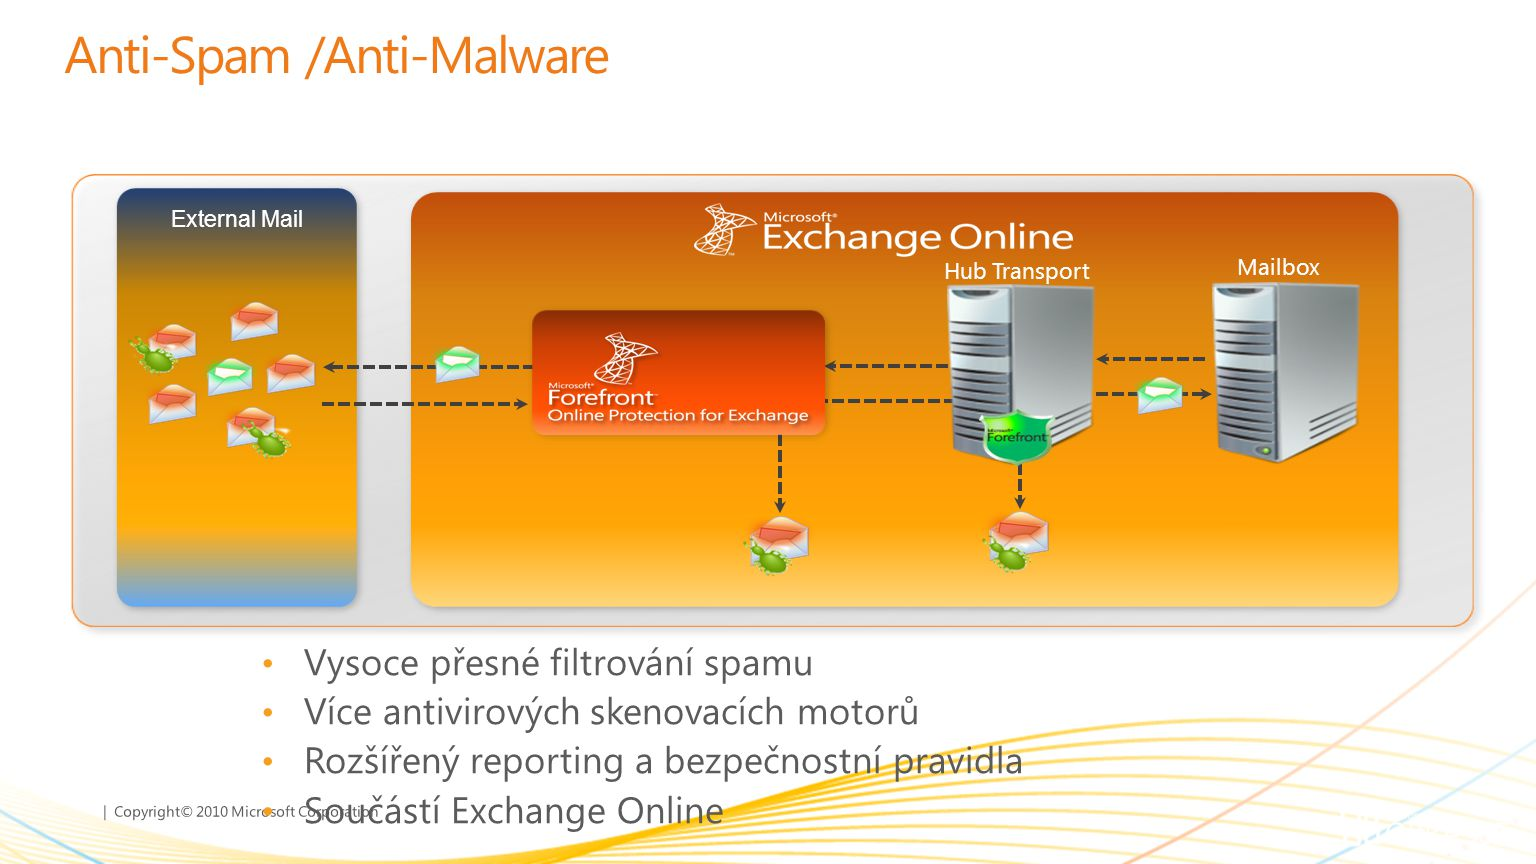 Anti-Spam /Anti-Malware